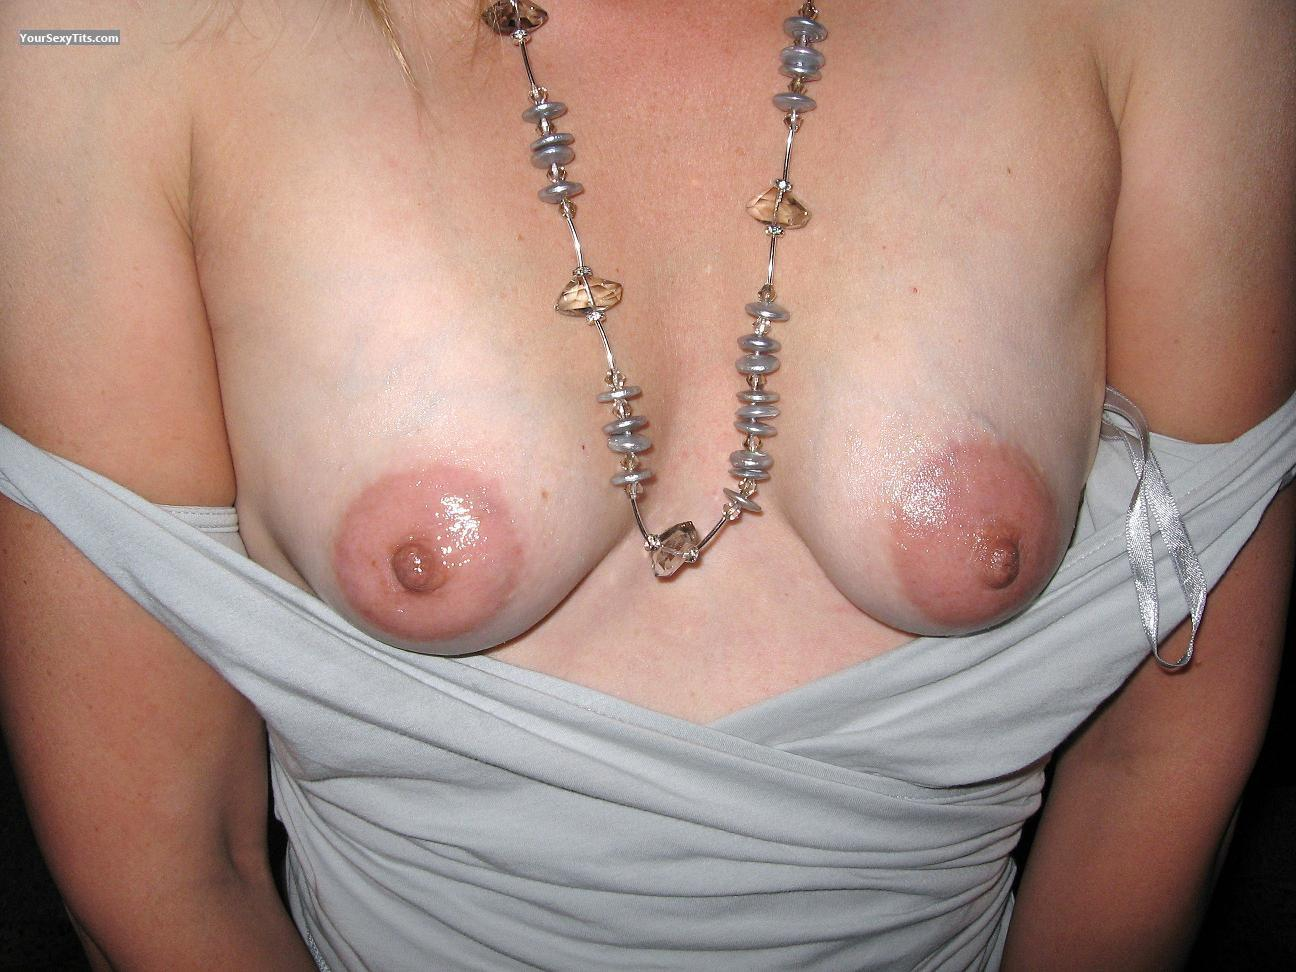 Tit Flash: Small Tits - Chrystal from United States